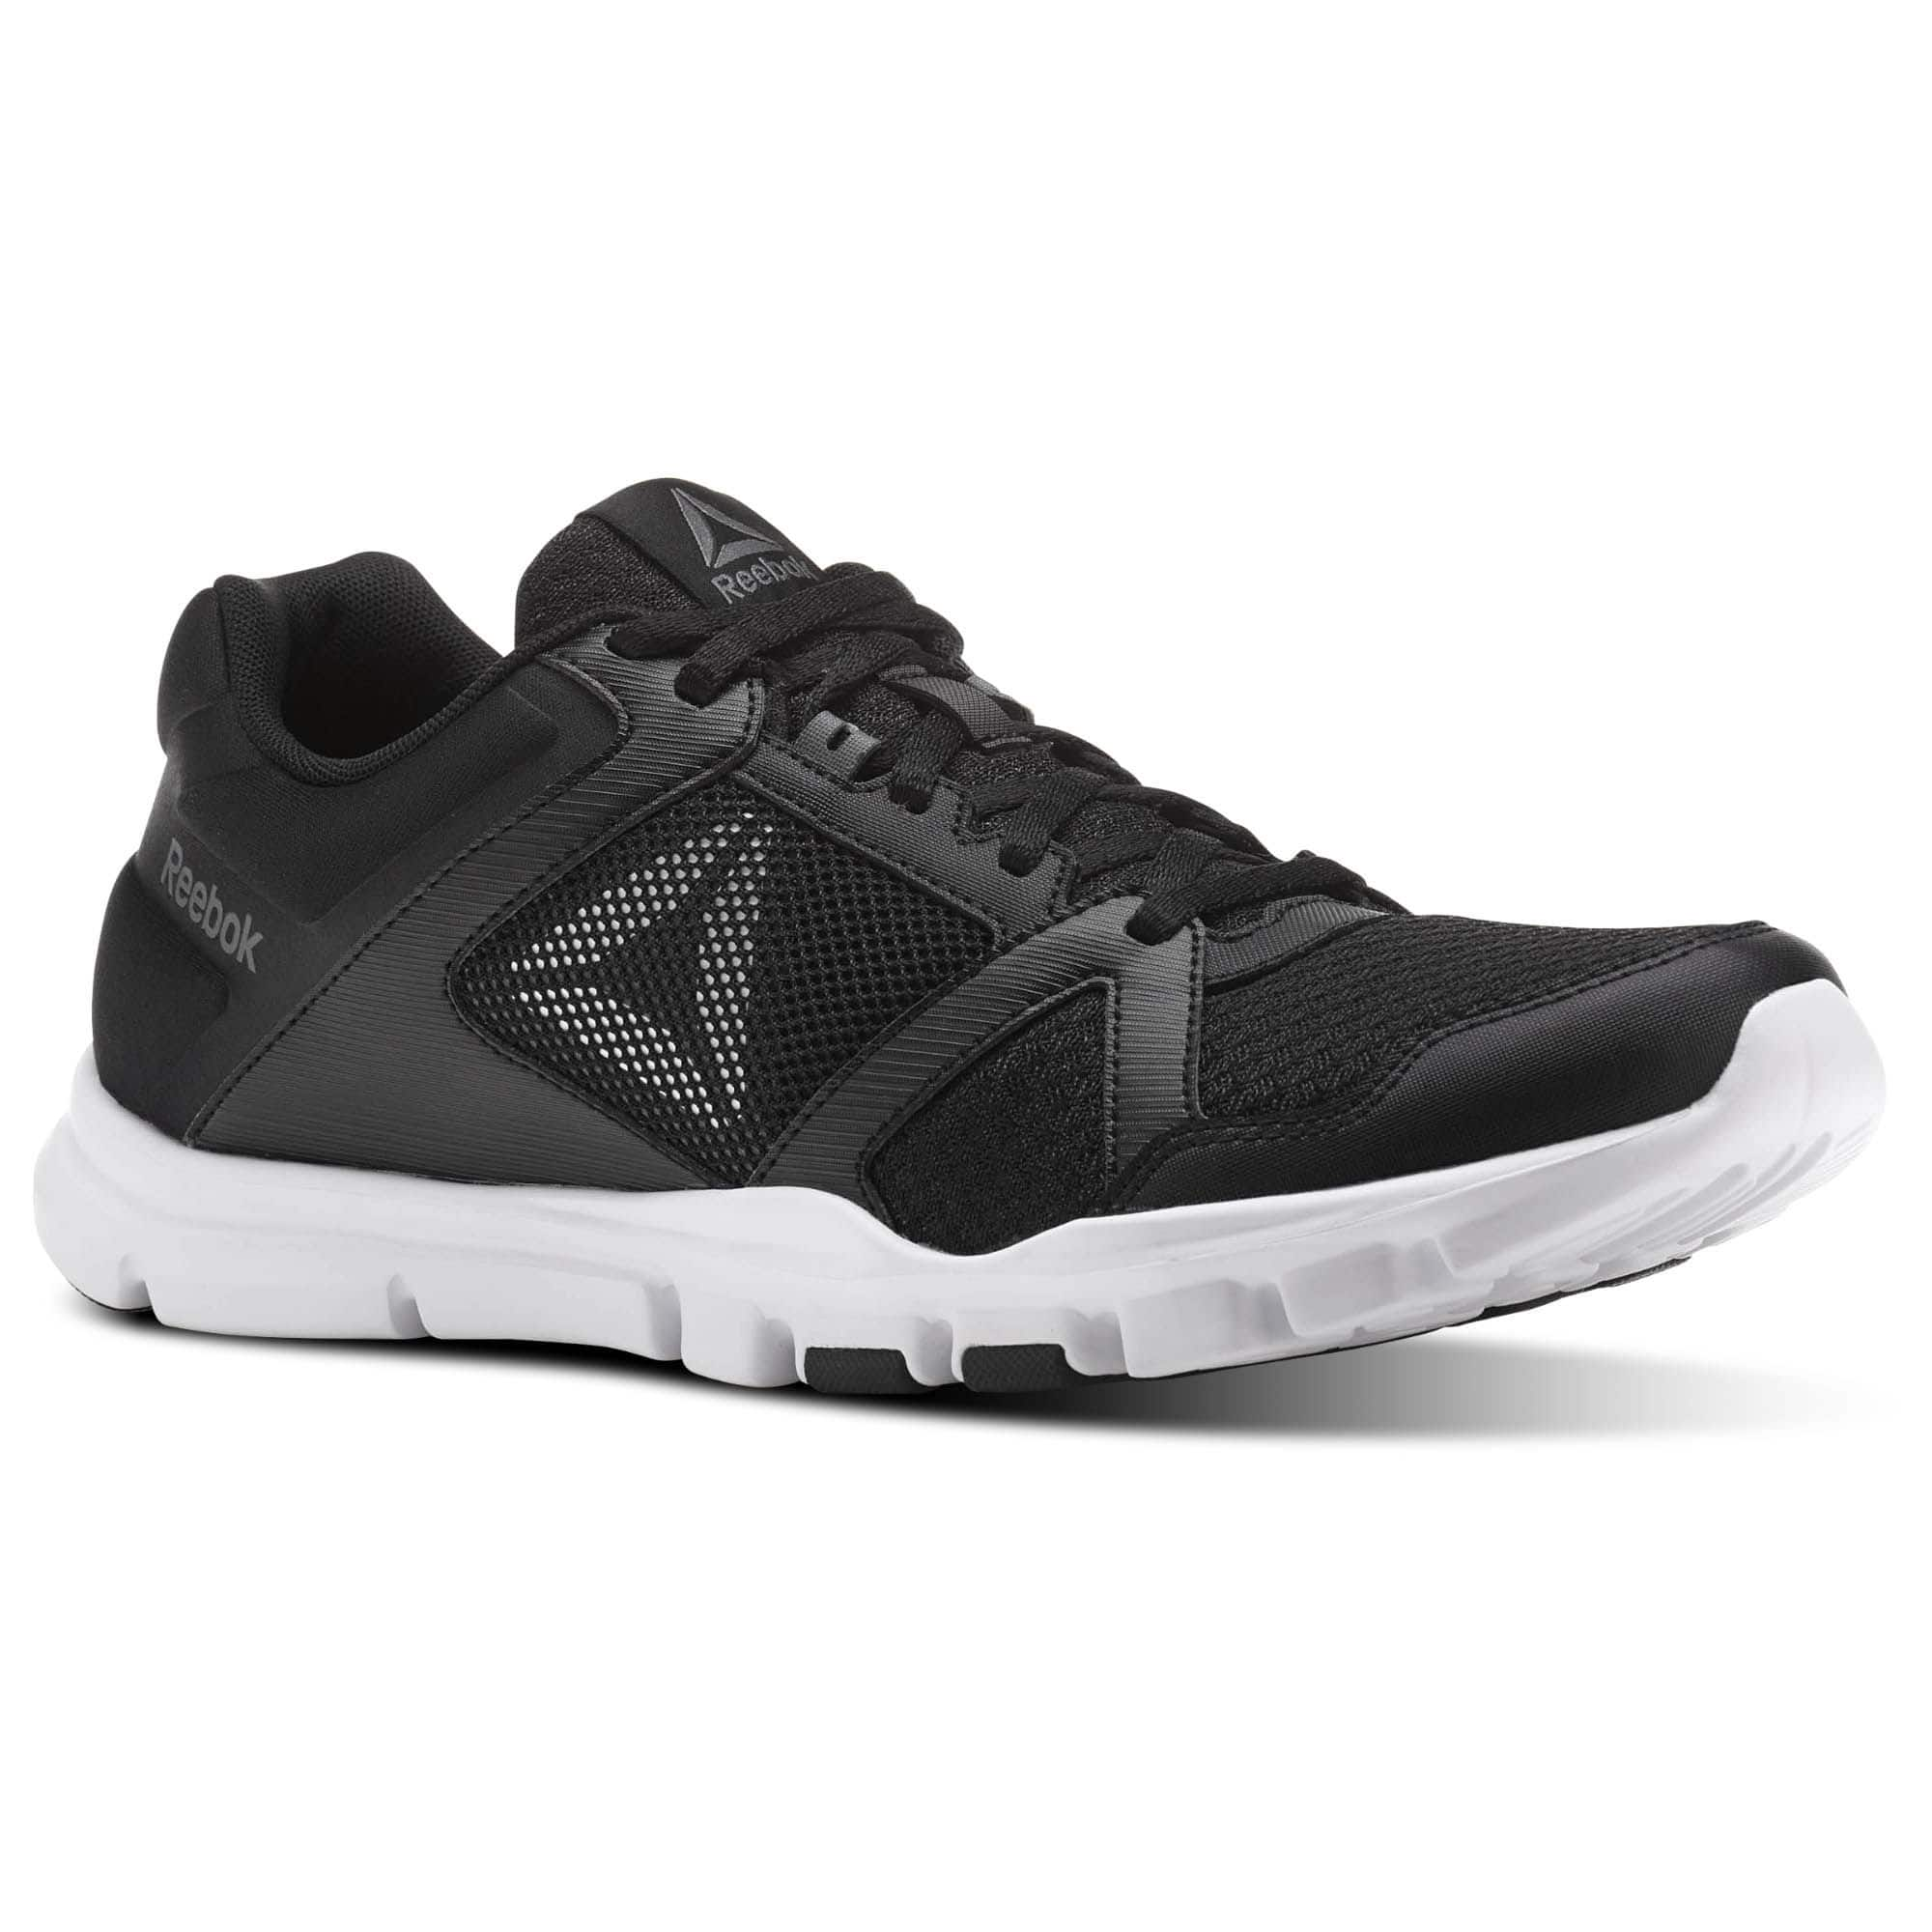 748fc5ad98c137 Reebok Men s Trainfusion Nine 3.0 Shoes (Black White Pewter ...